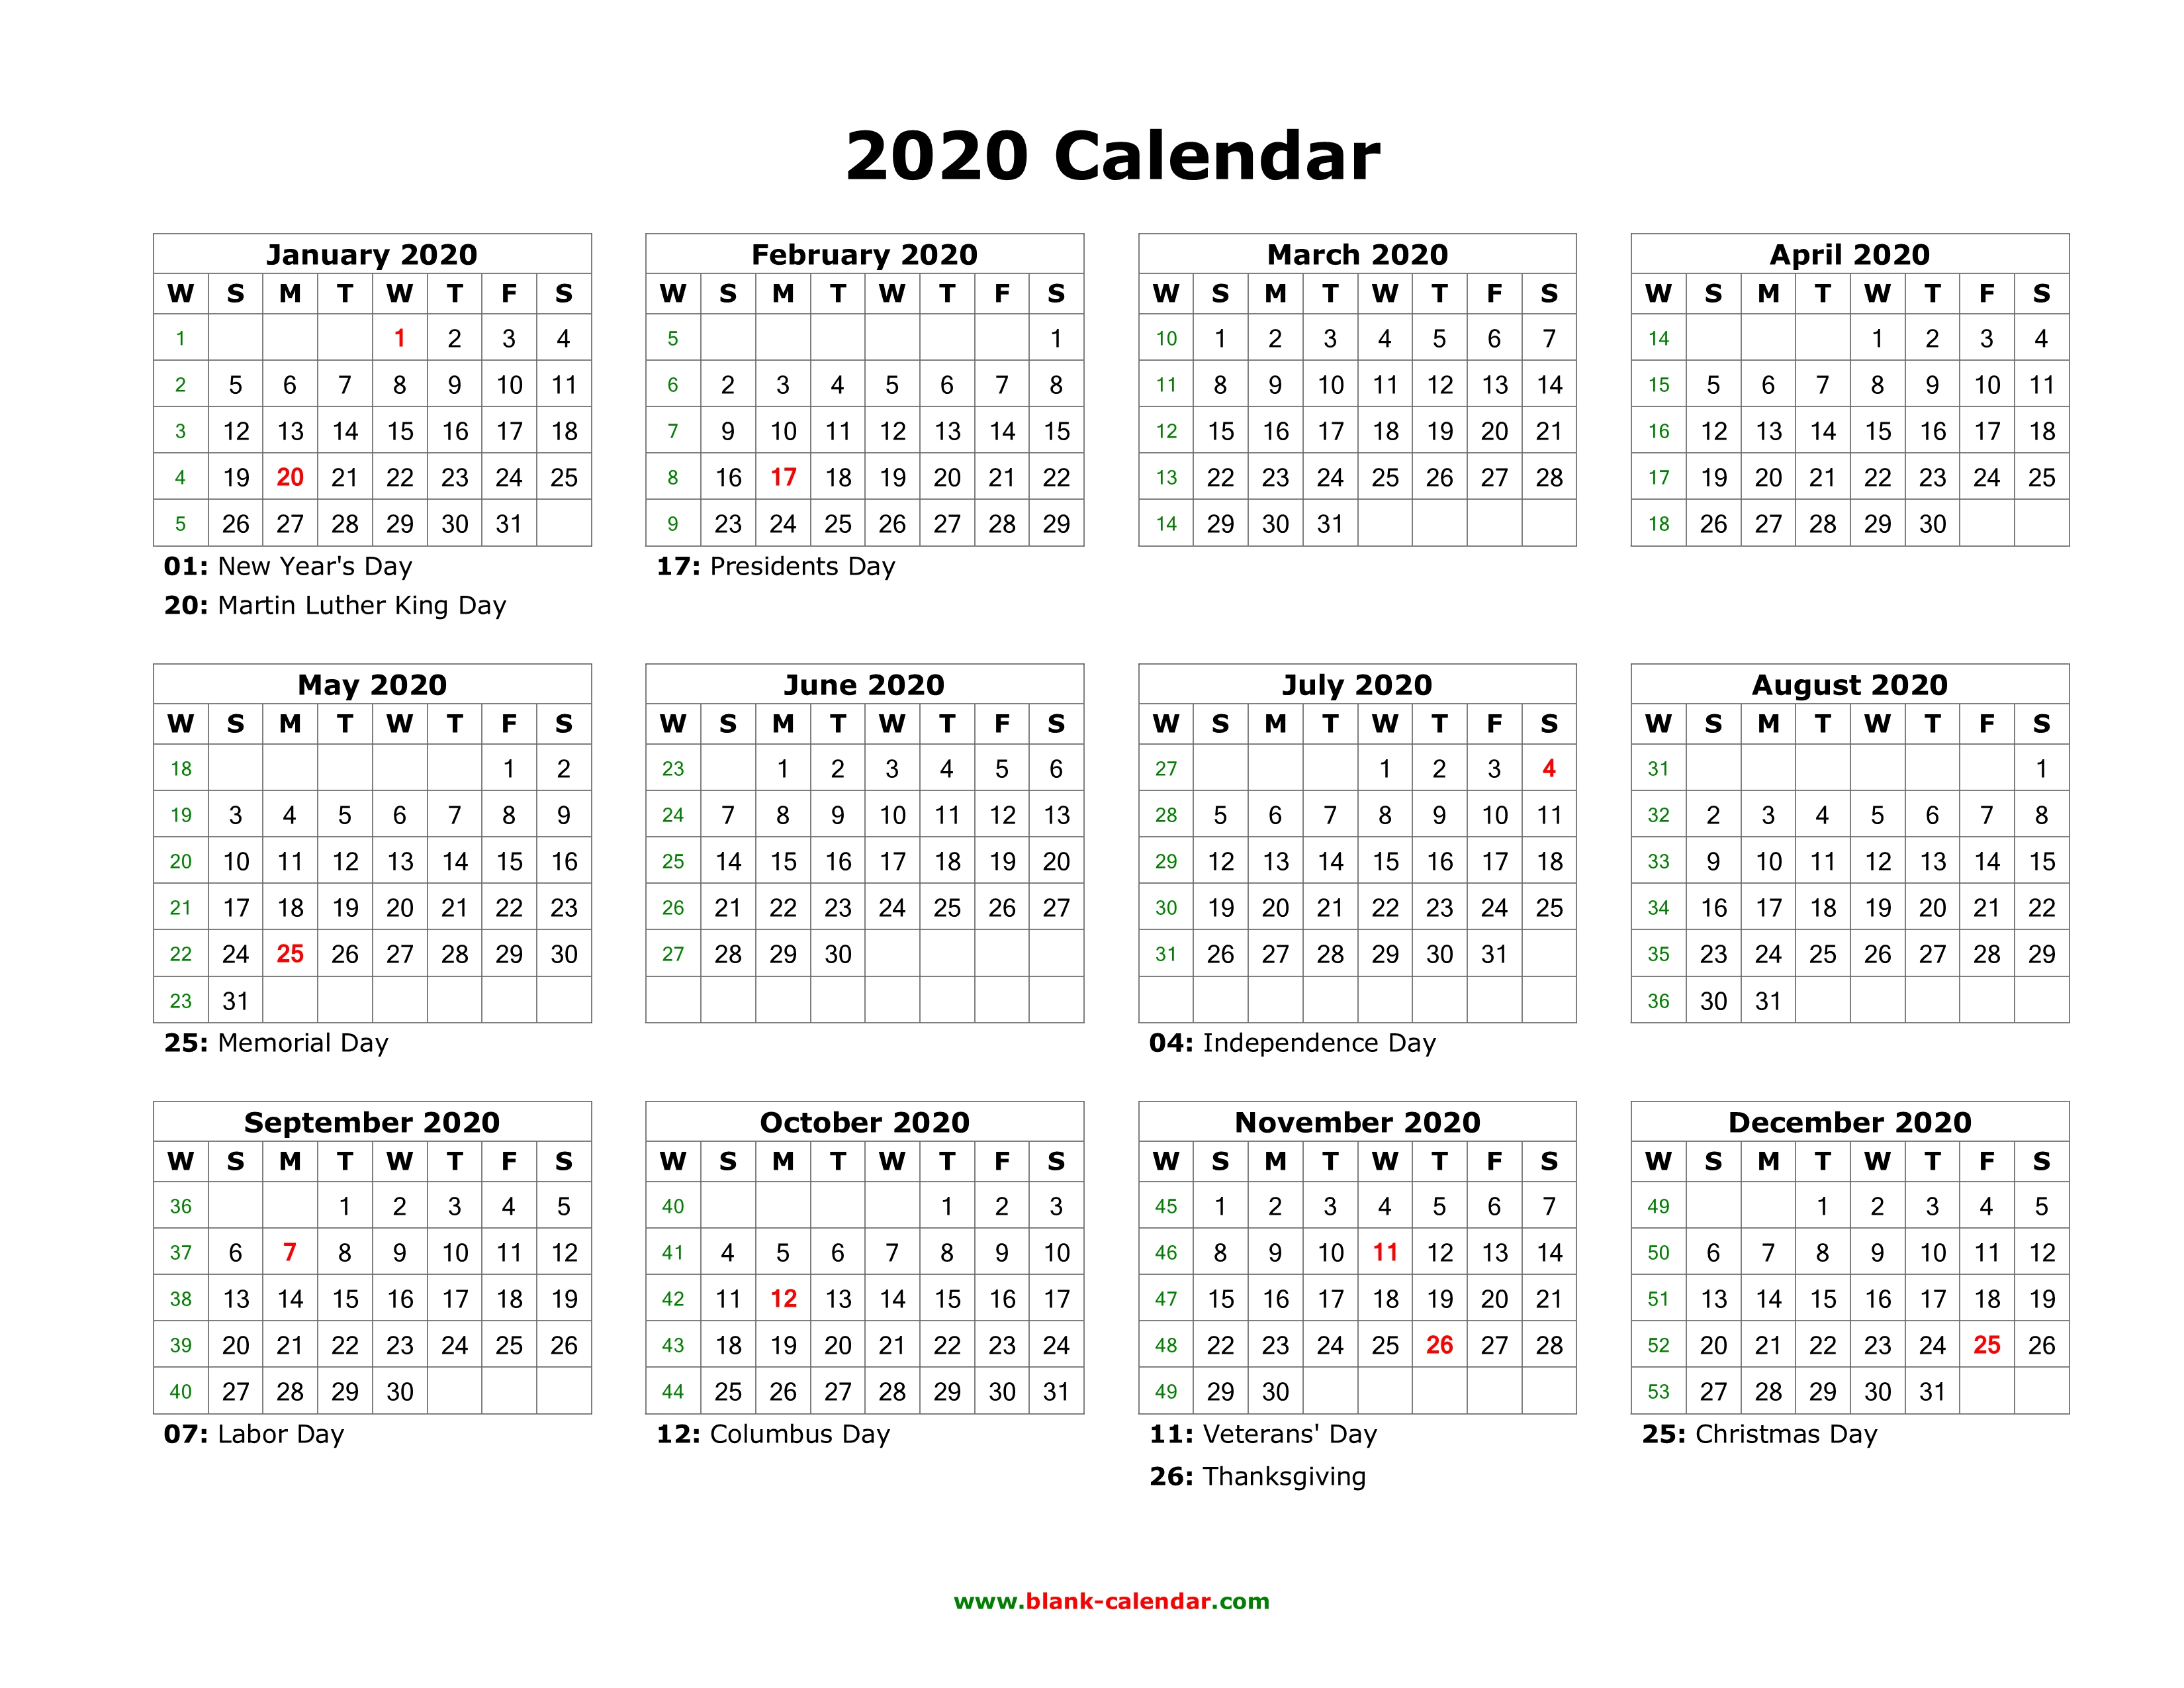 Download Blank Calendar 2020 With Us Holidays (12 Months On One Page within Printable Calendar One Week Per Page 2020